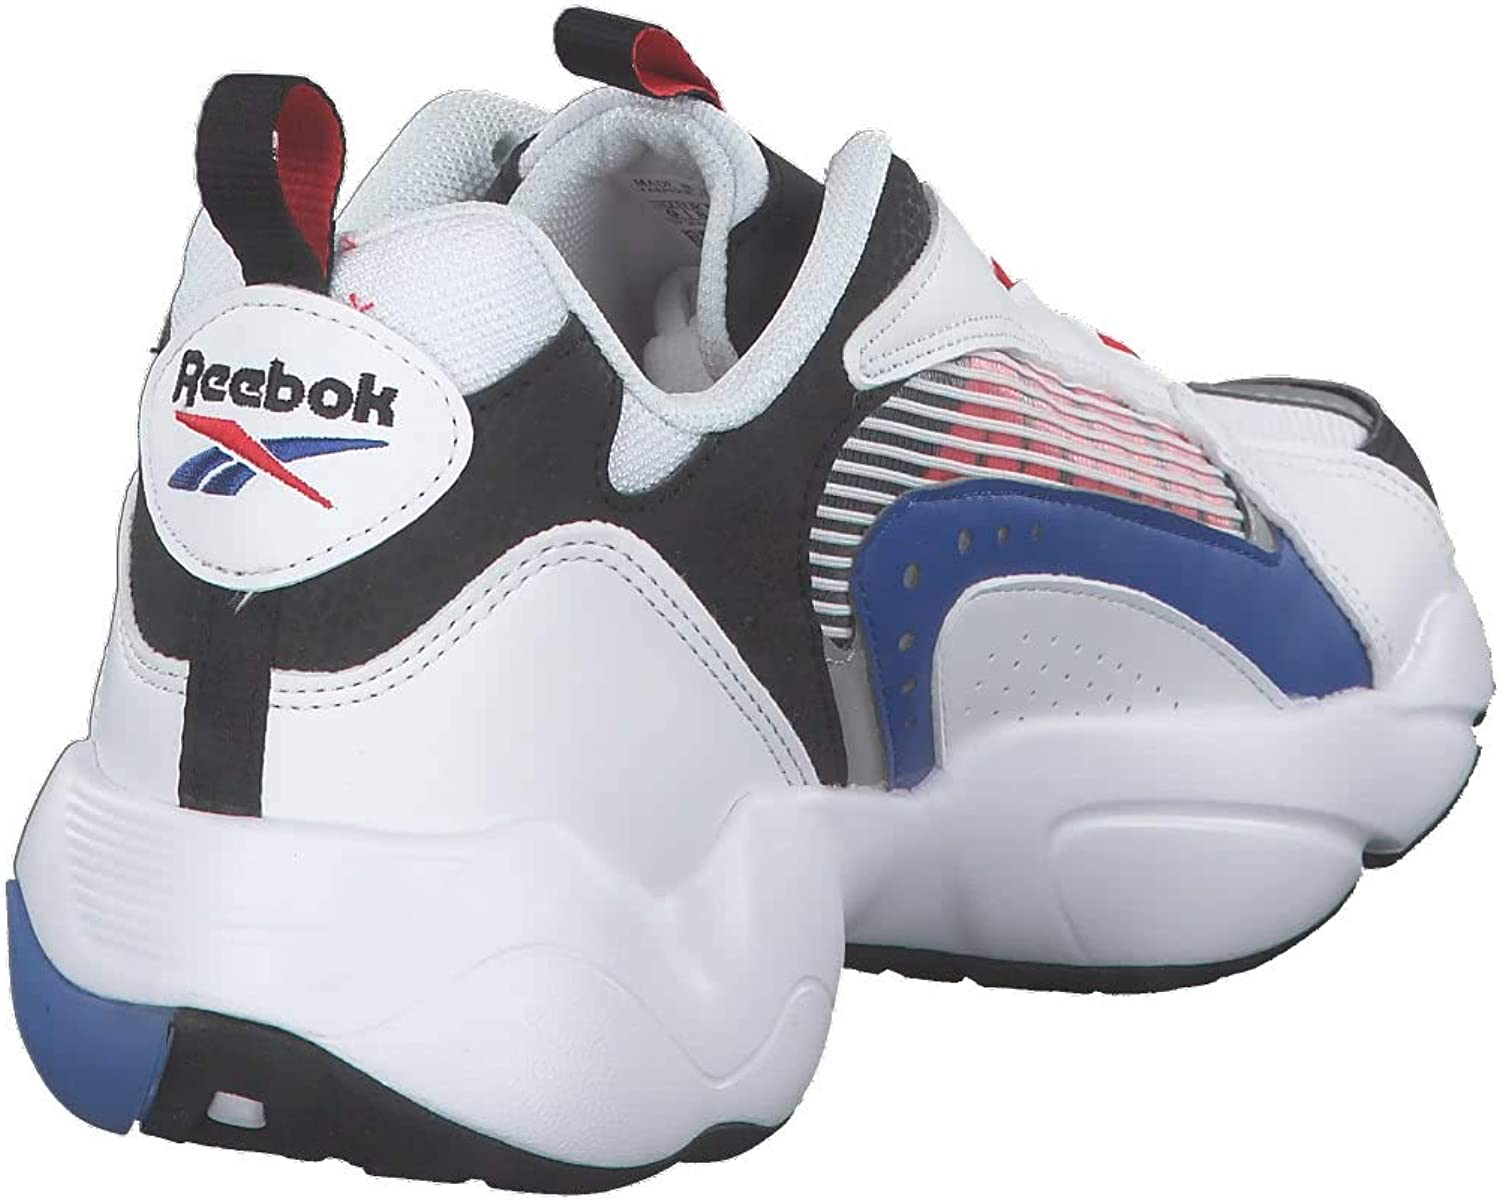 Details about  /Reebok Royal Pervader Sneaker   Size 13    White//Humble Blue//Primal Red  EH2480